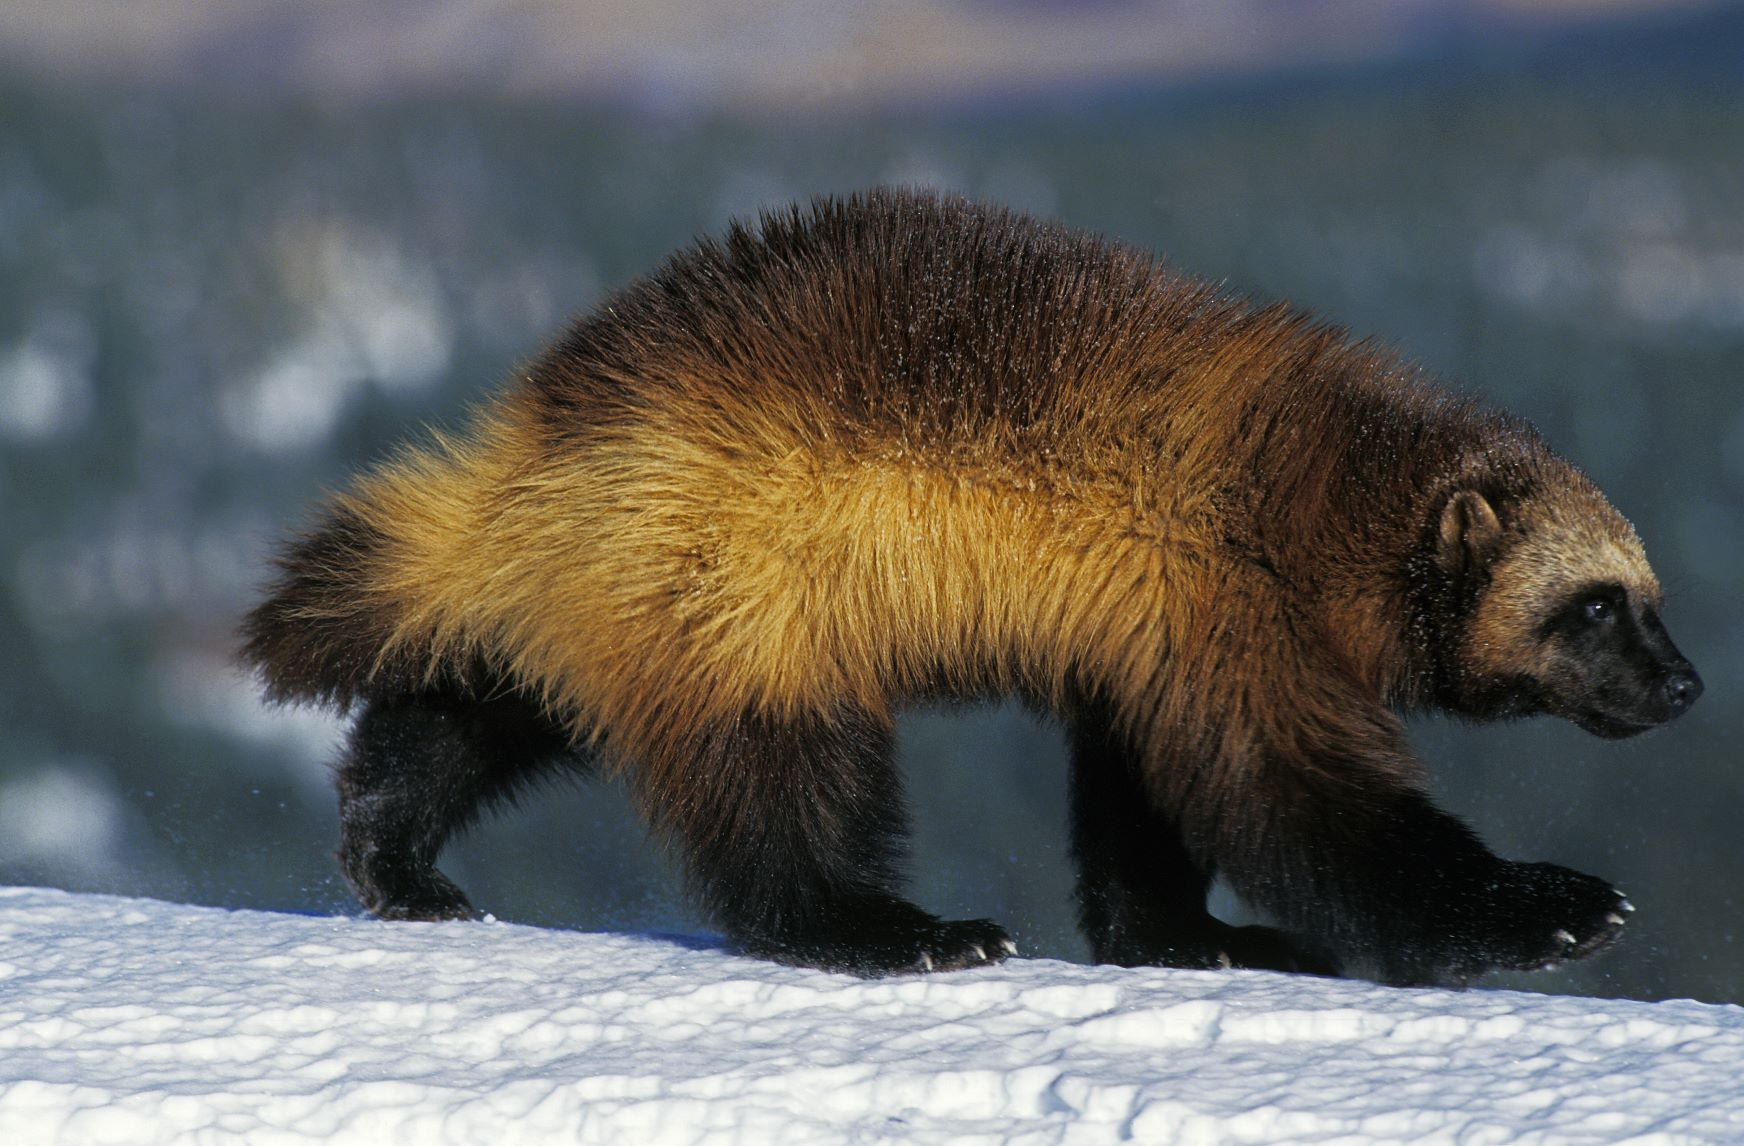 A wolverine animal walking through the snow.